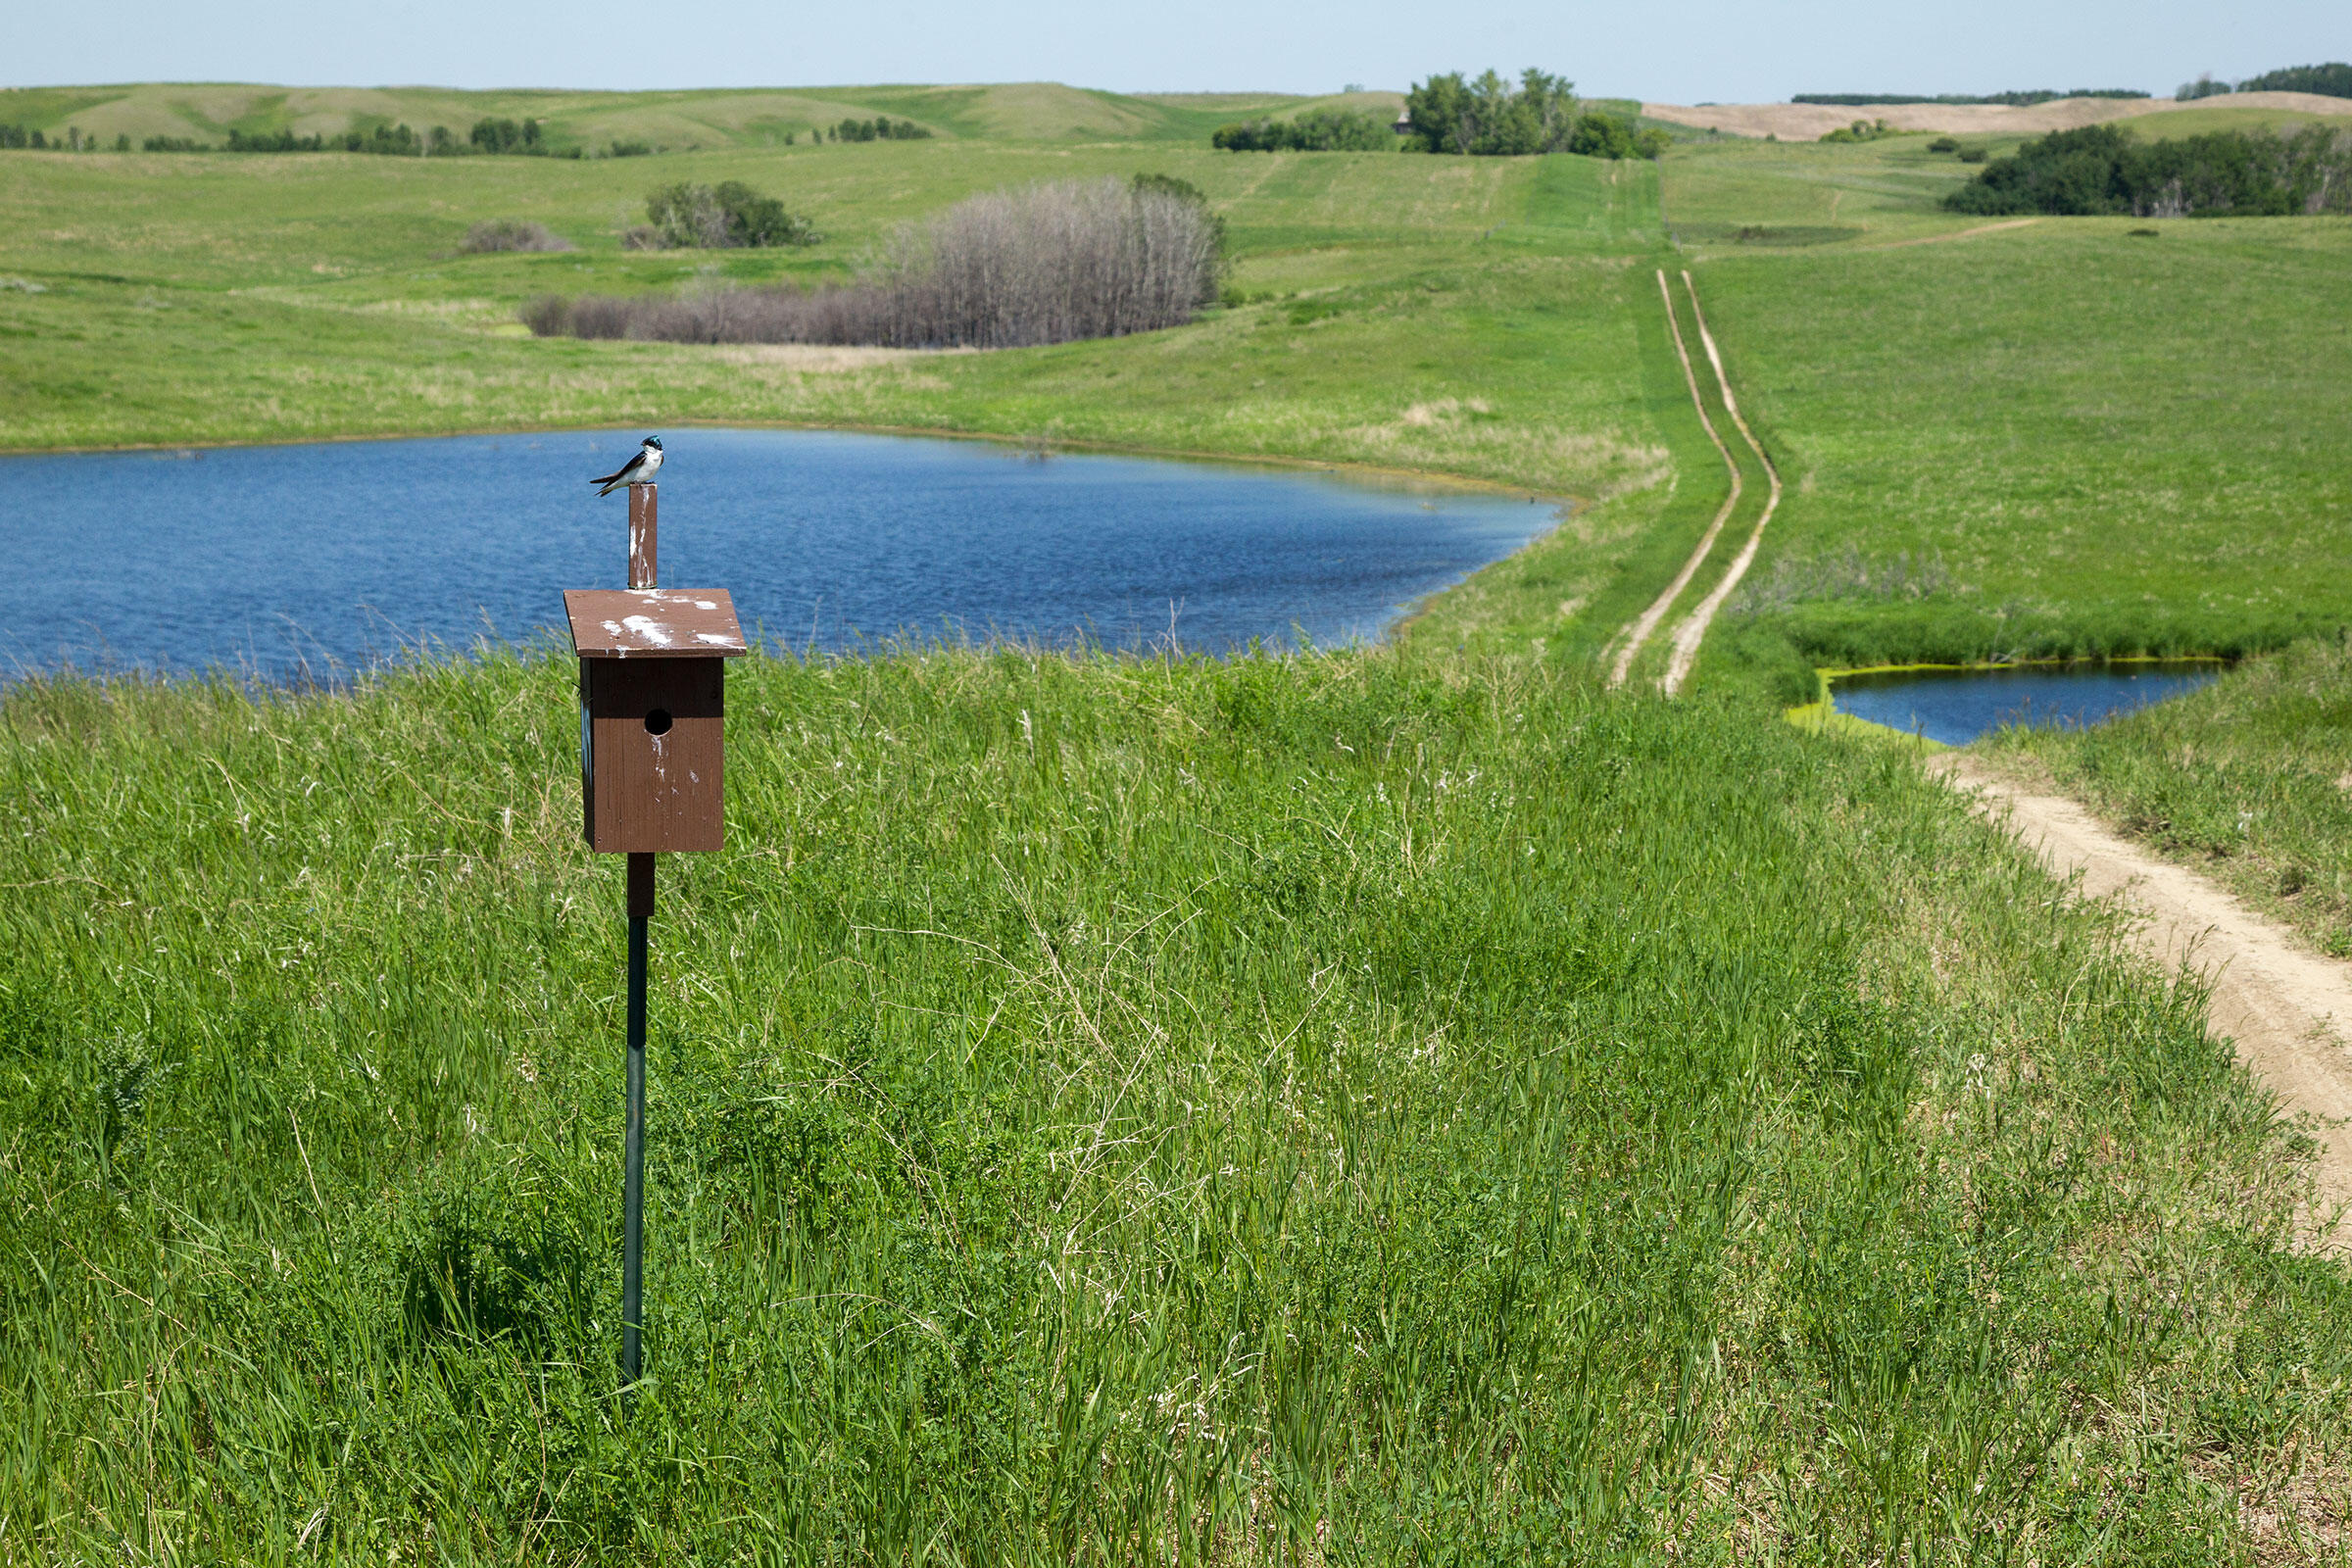 Morrissey's team monitors more than 150 nest boxes per year. Many of them are adjacent to farm fields, but a century ago all of southern Saskatchewan was part of the largest grassland on Earth. Connor Stefanison